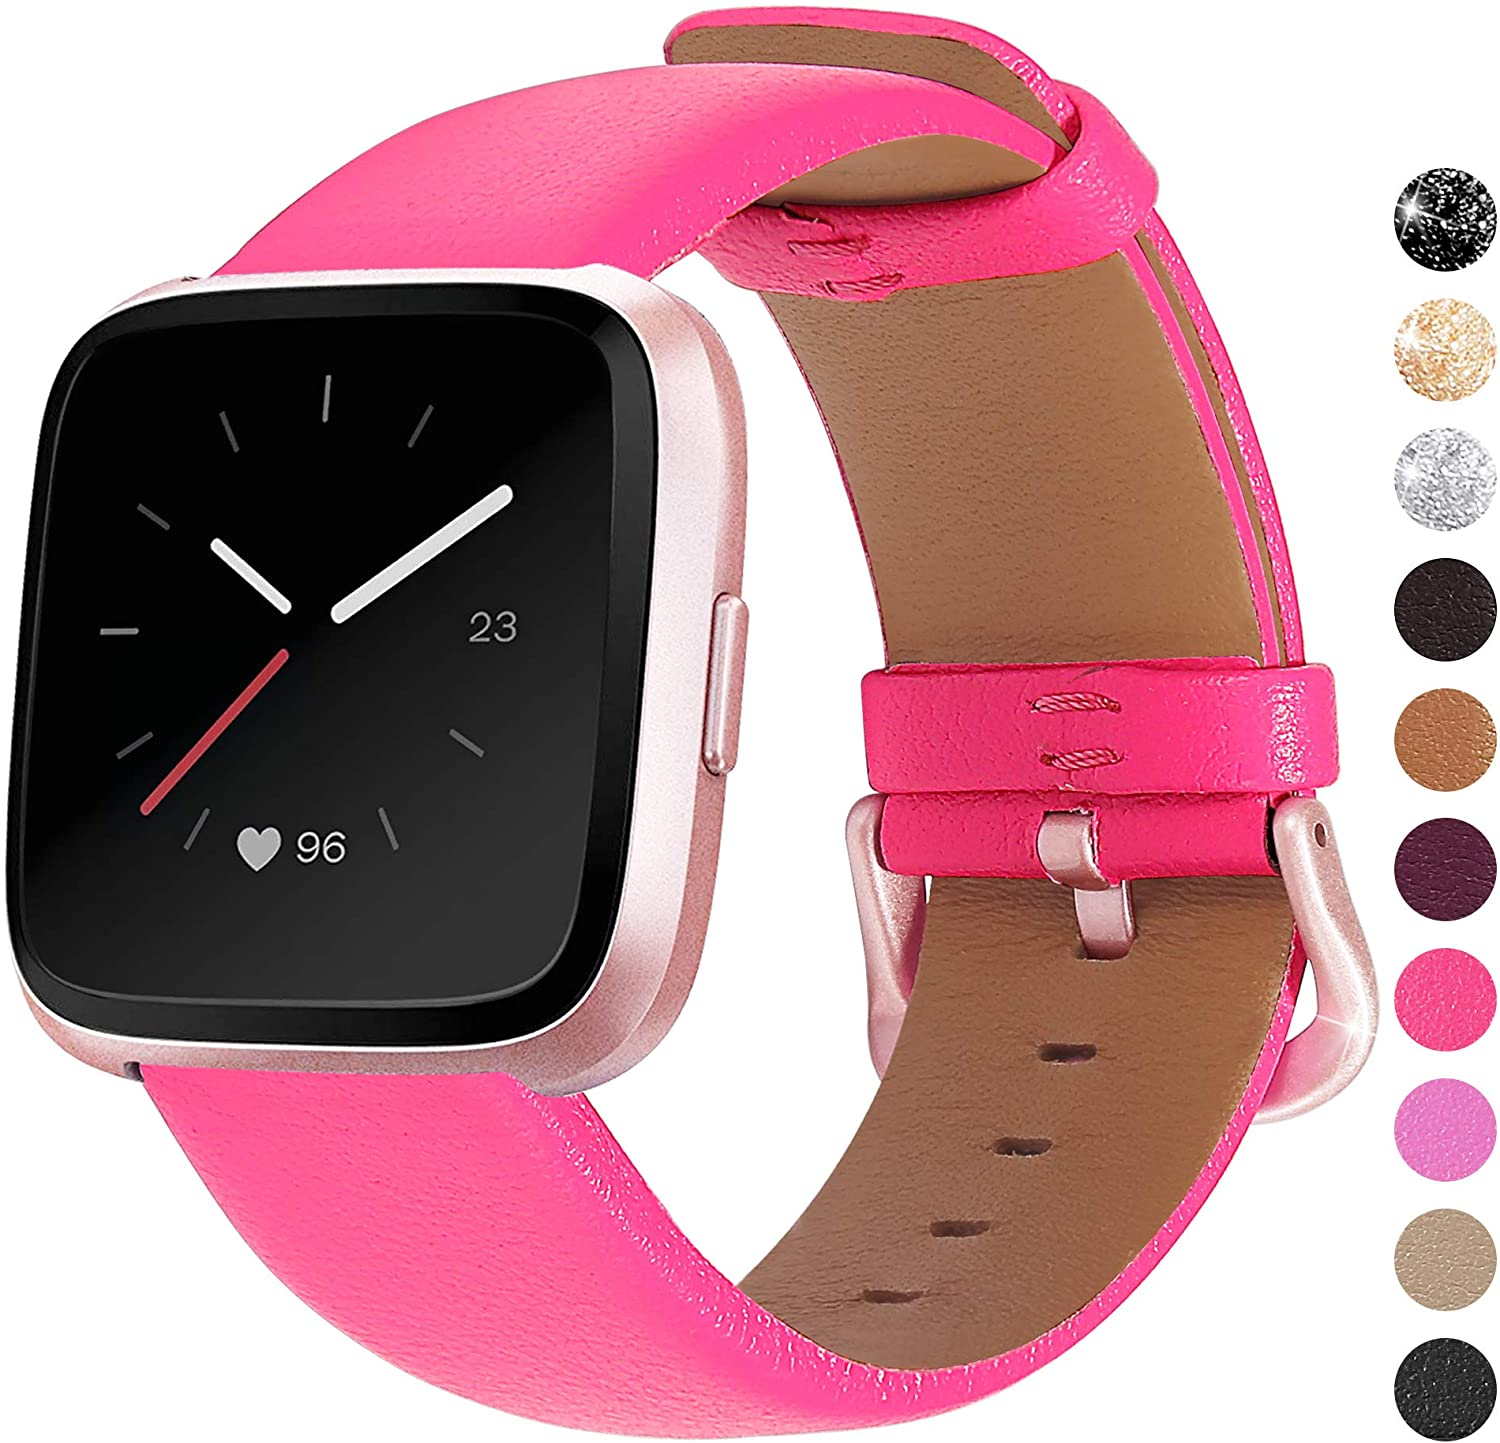 Mosstek Genuine Leather Bands Compatible with Fitbit Versa 2 & Versa 1 & Versa Lite & Versa Special, Genuine Leather Band Replacement Strap for Versa Women Men - Hot Pink